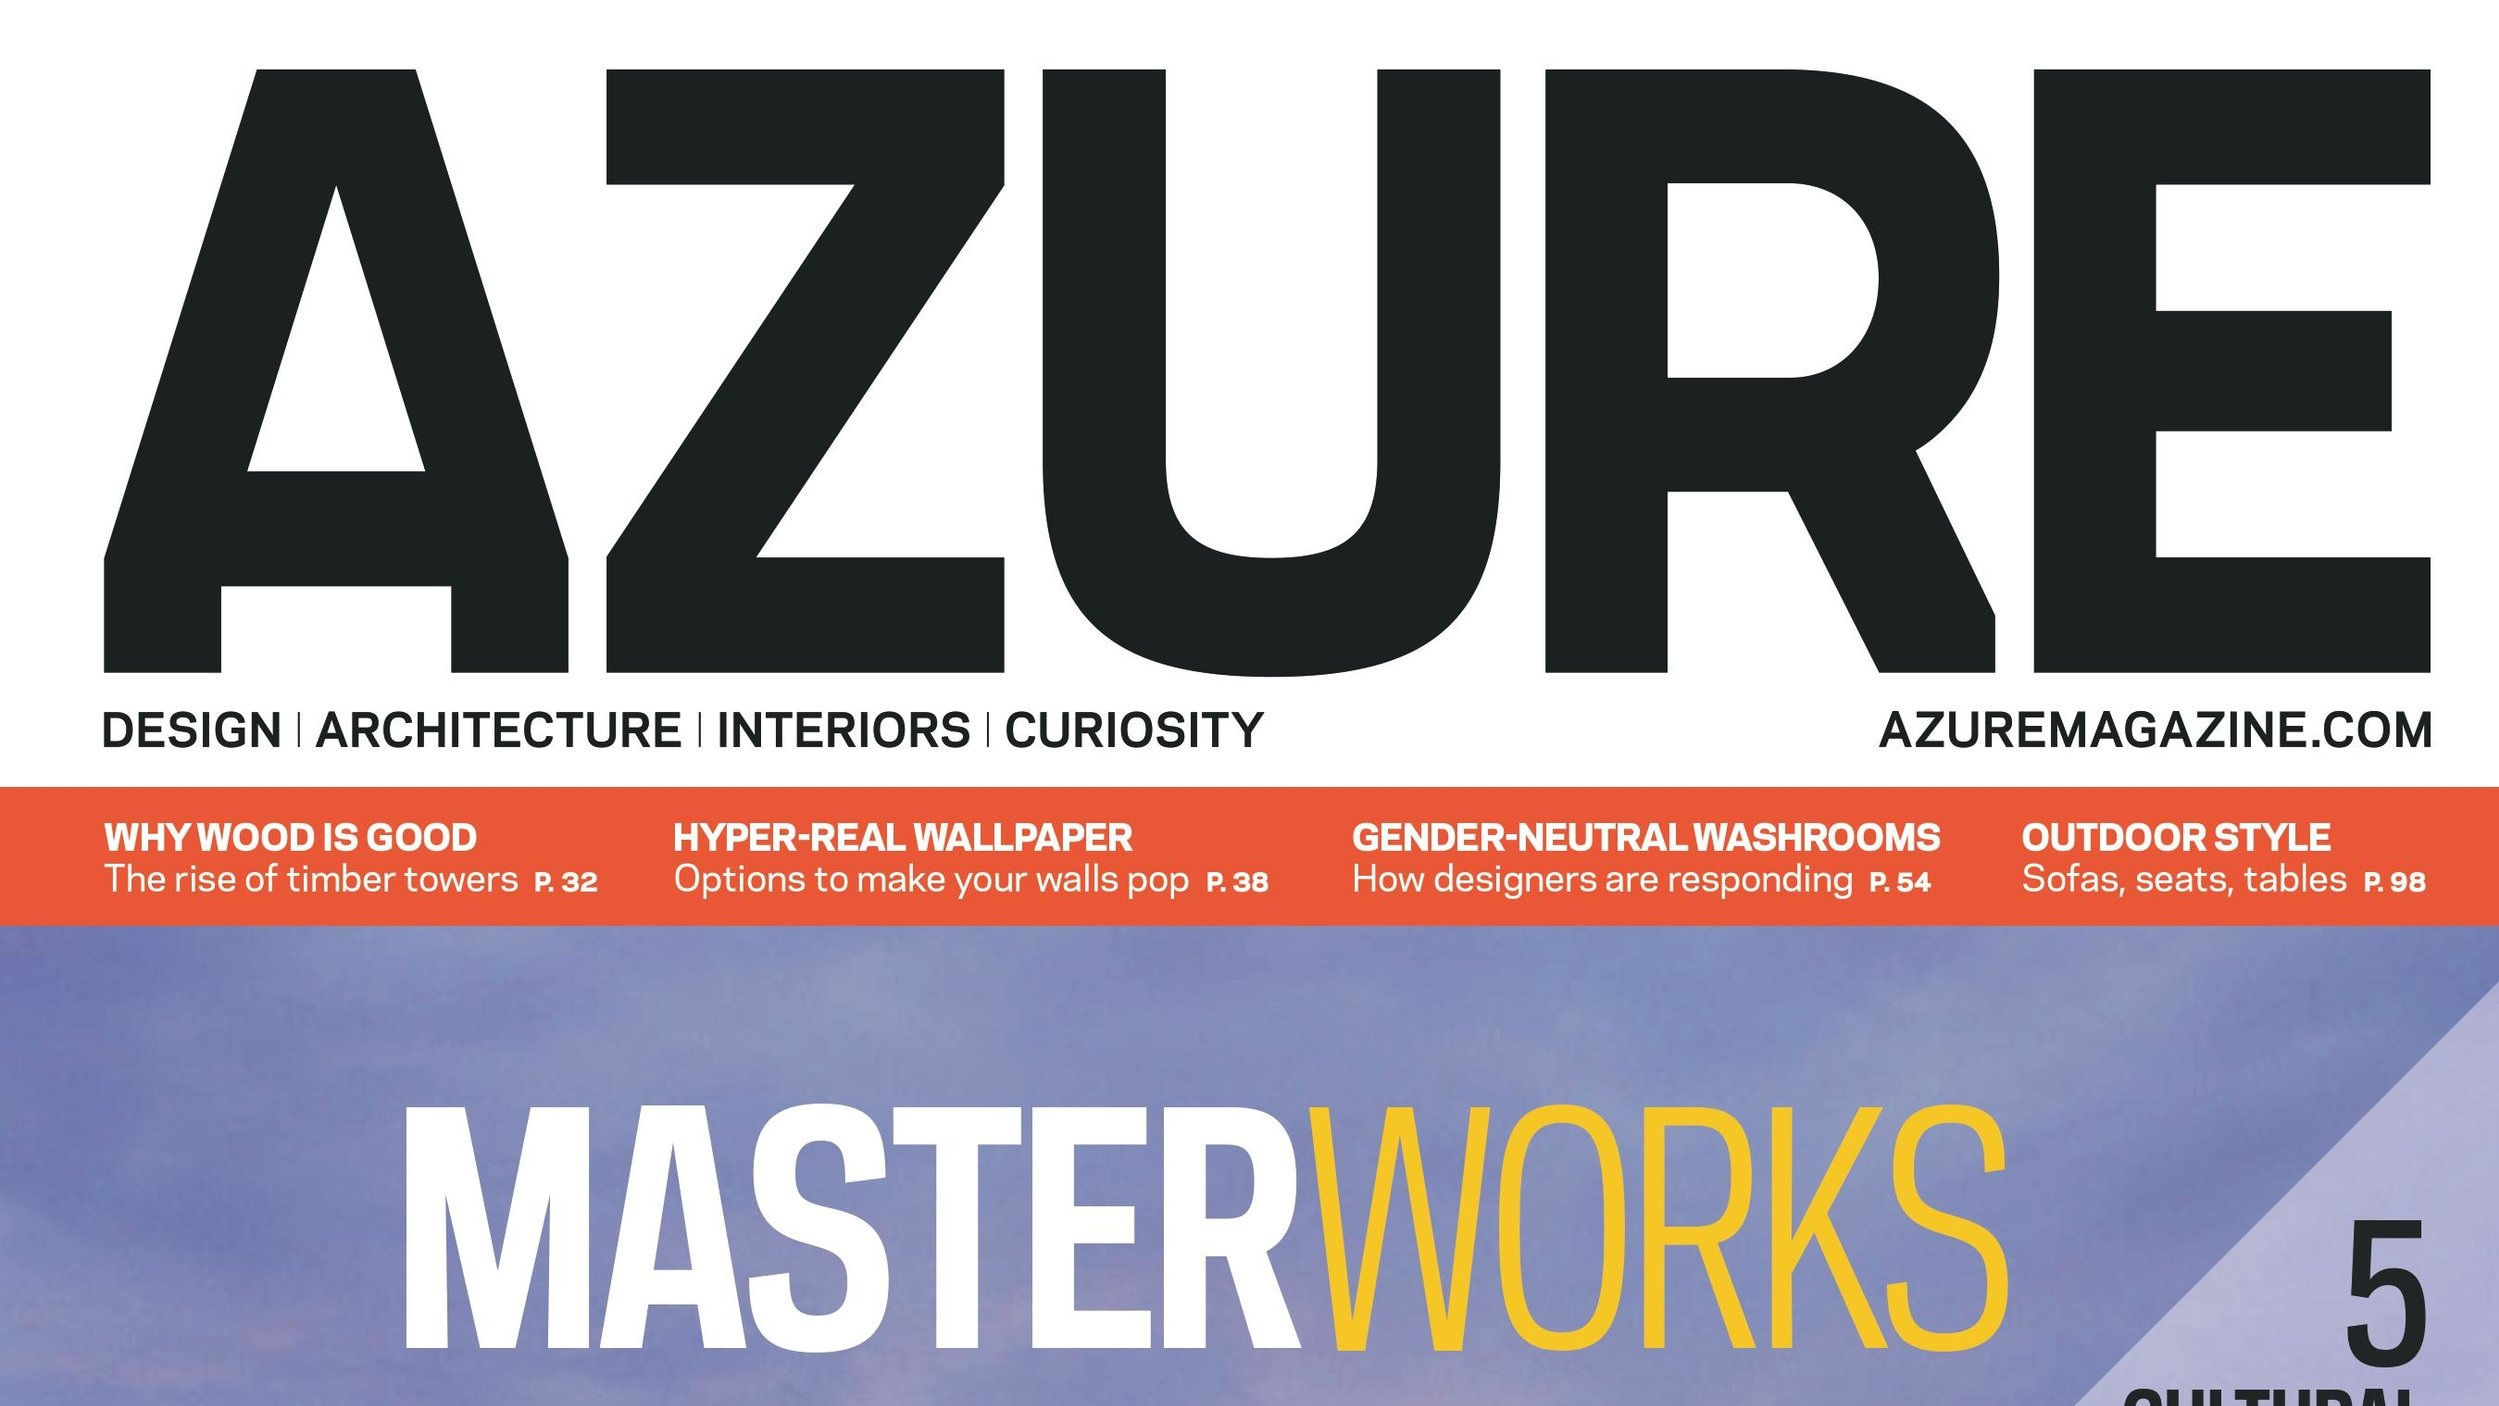 Azure Magazine - Former Senior Editor at leading Canadian design and architecture publication Azure Magazine, where in addition to composing heds, deks, coverlines, photo captions, and reviews, I edited features and wrote for the magazine's blog.